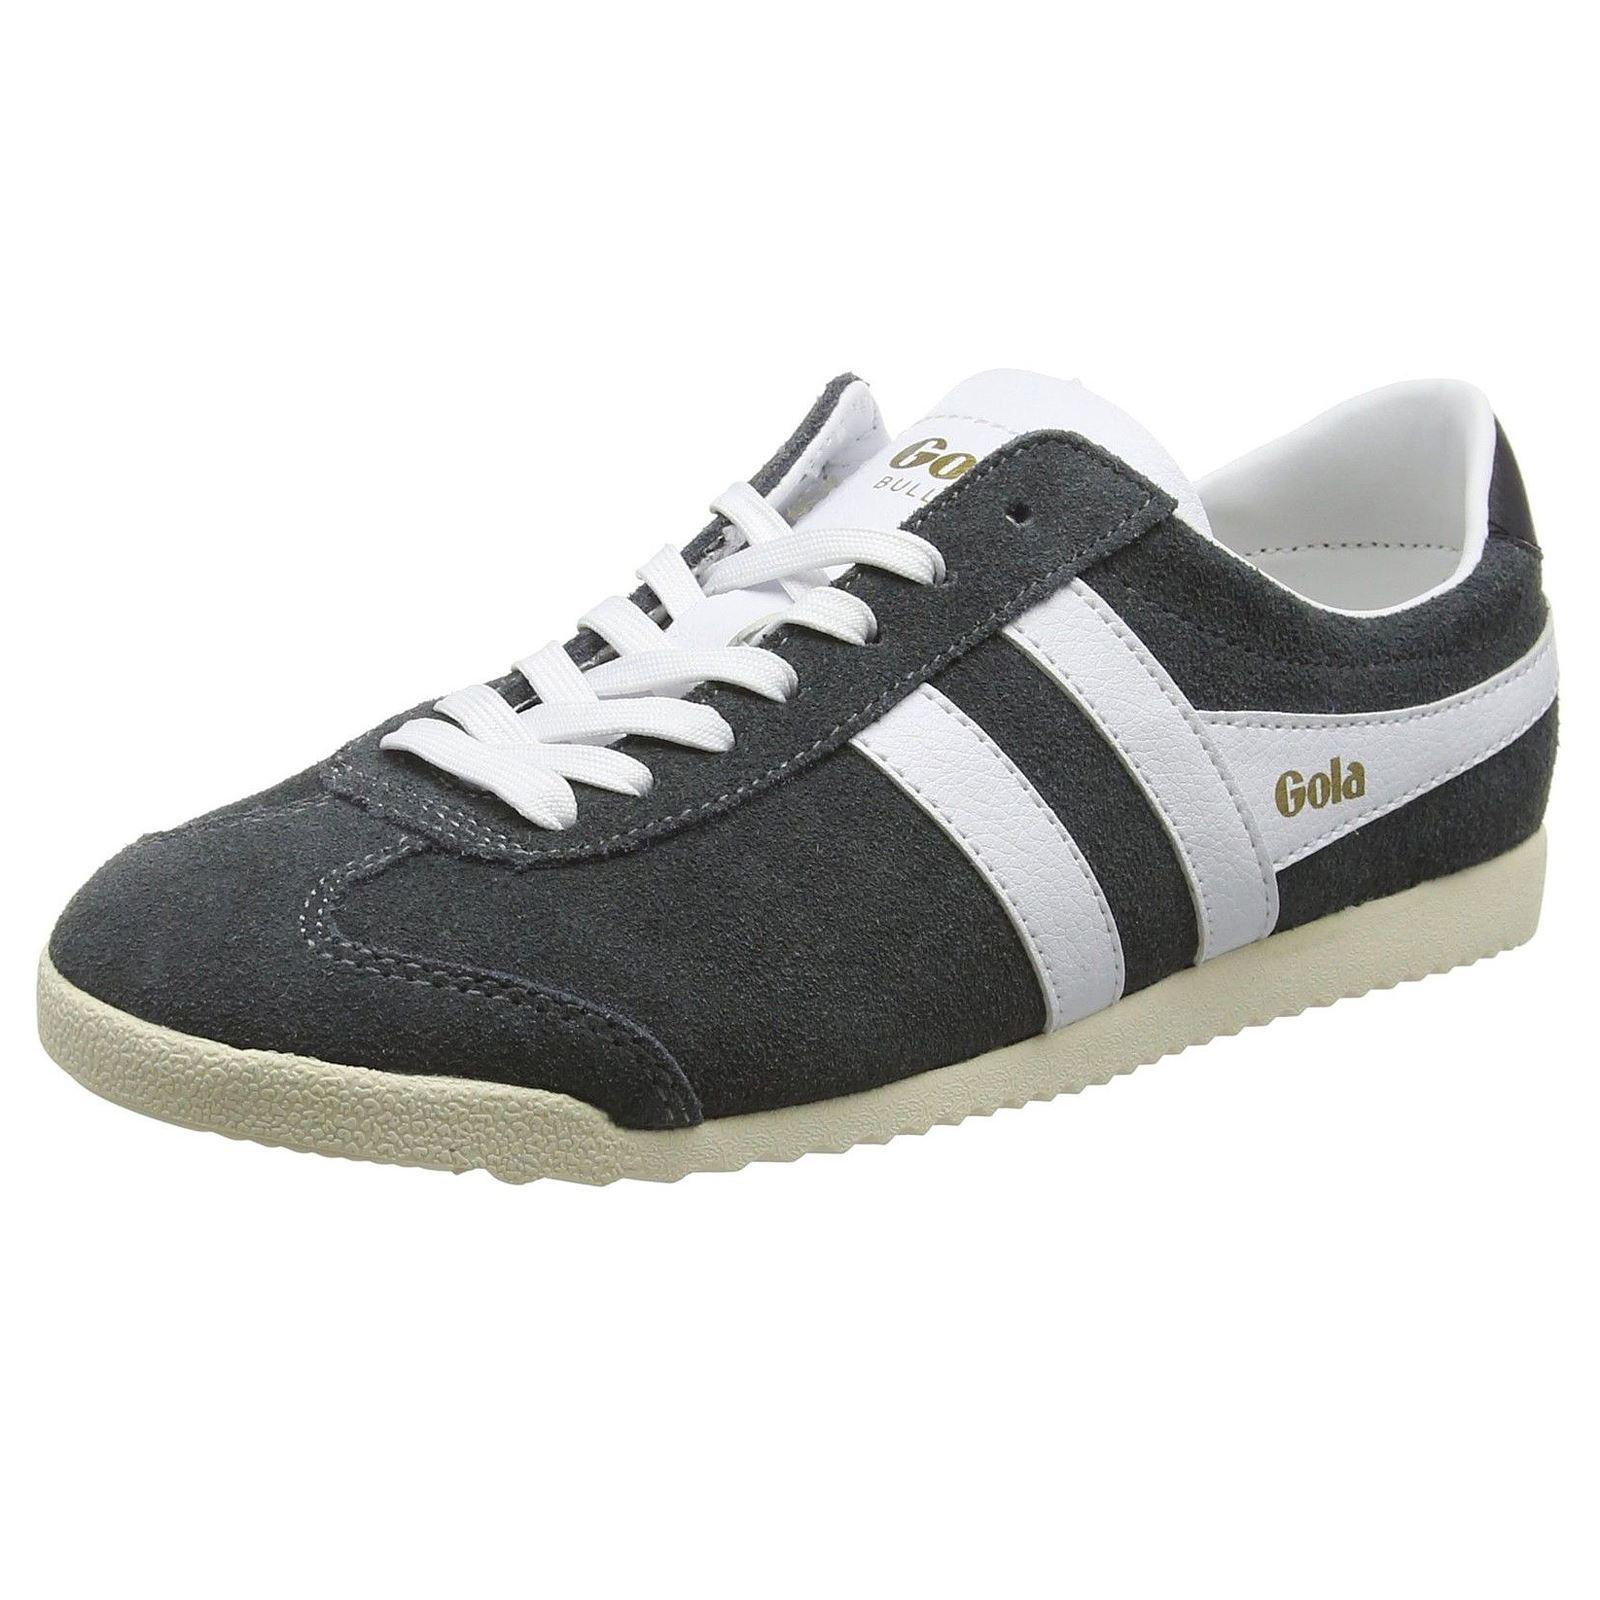 Gola Classics Bullet Grey White Womens Retro Sneakers Trainers Ebay